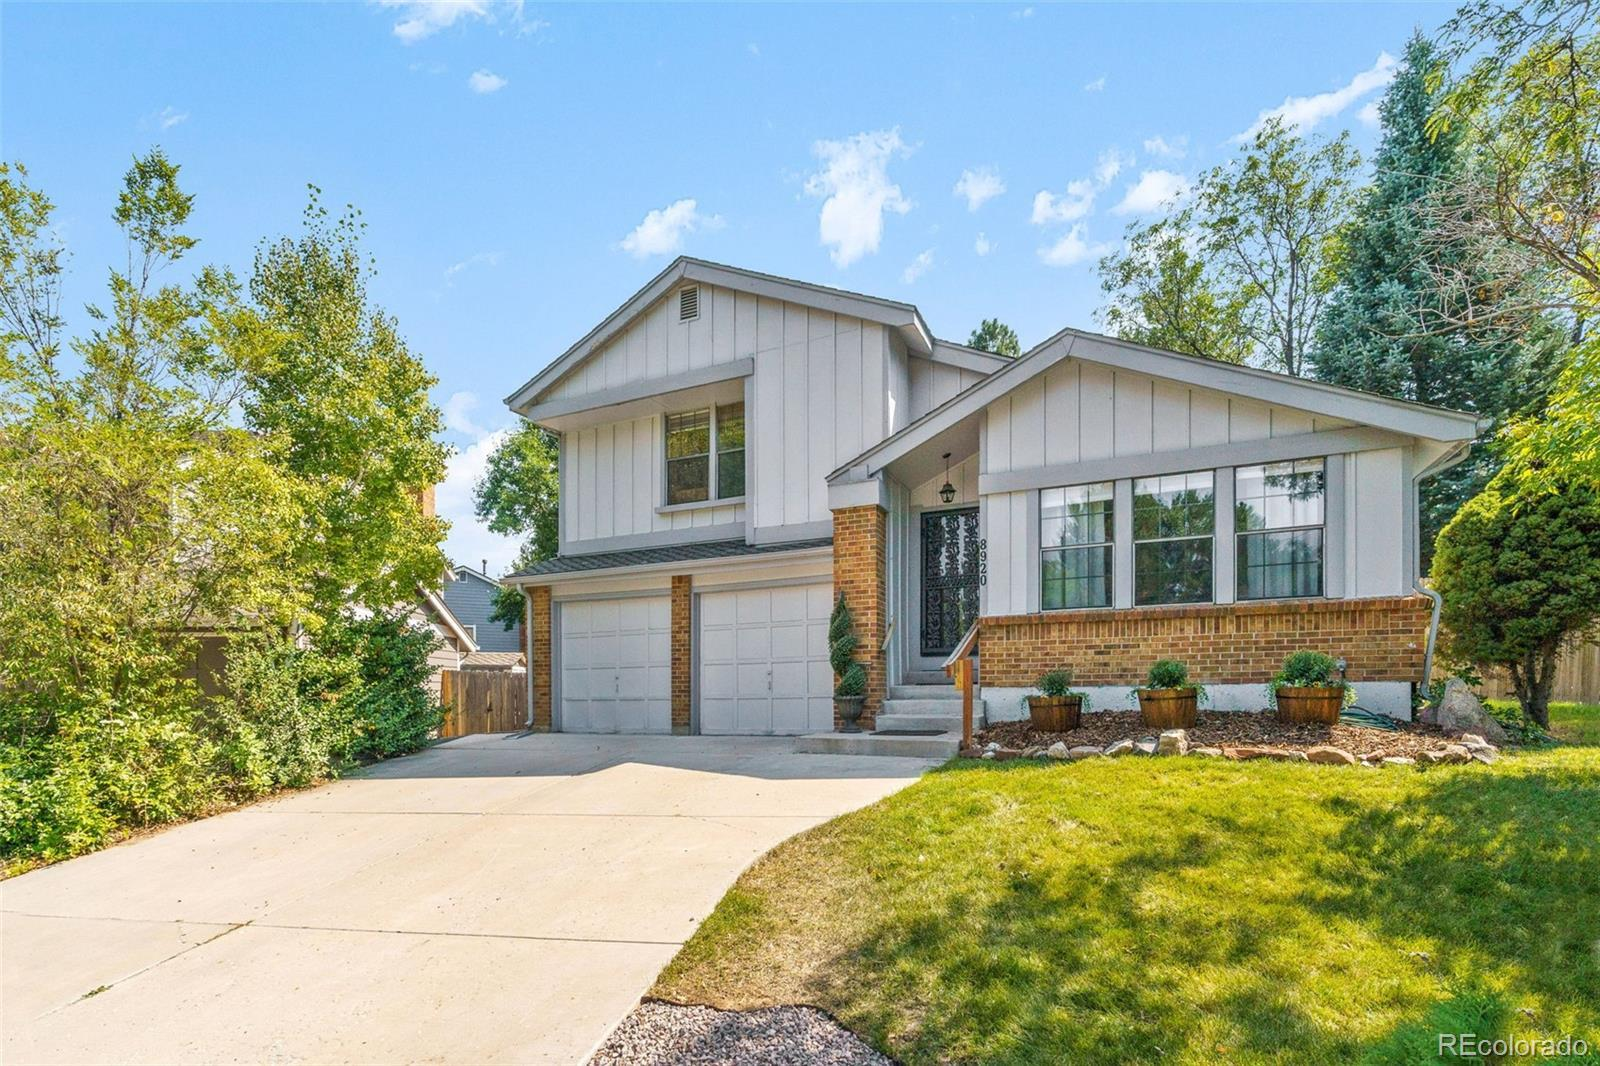 8920 W 80th Drive, Westminster, CO 80005 - #: 4655400